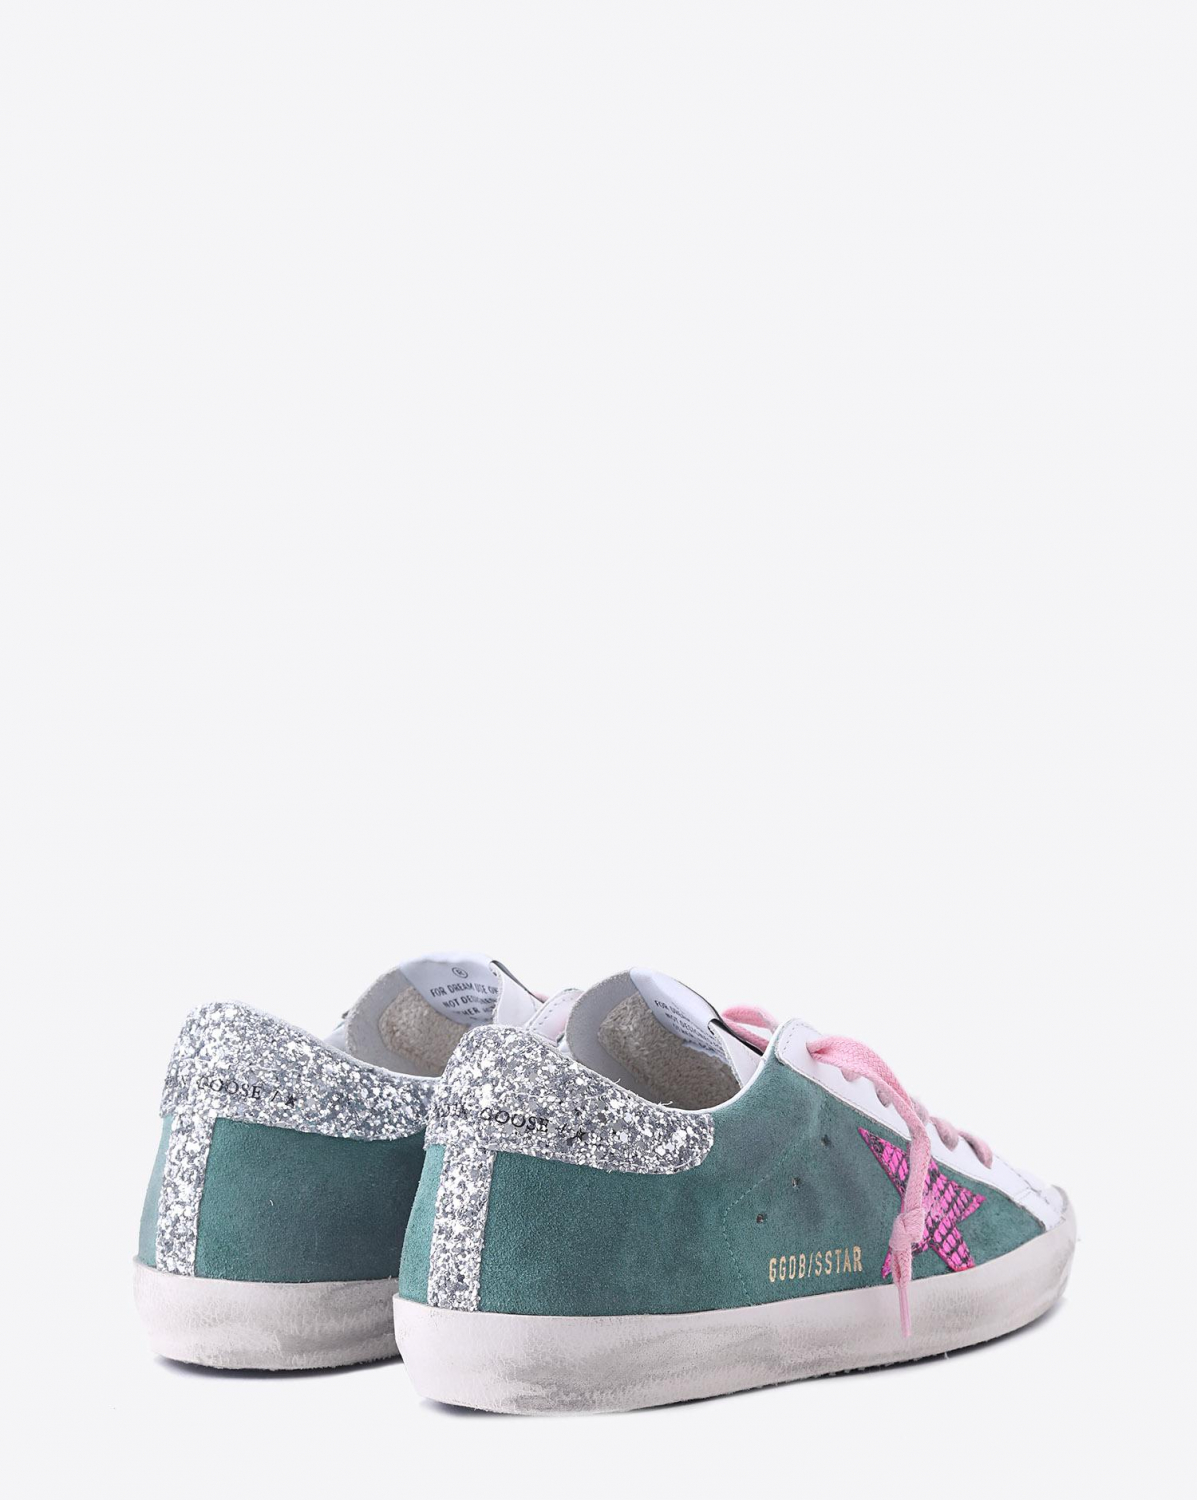 Golden Goose Woman Collection Sneakers Superstar - Green Leather - Printed Fuxia Python Star